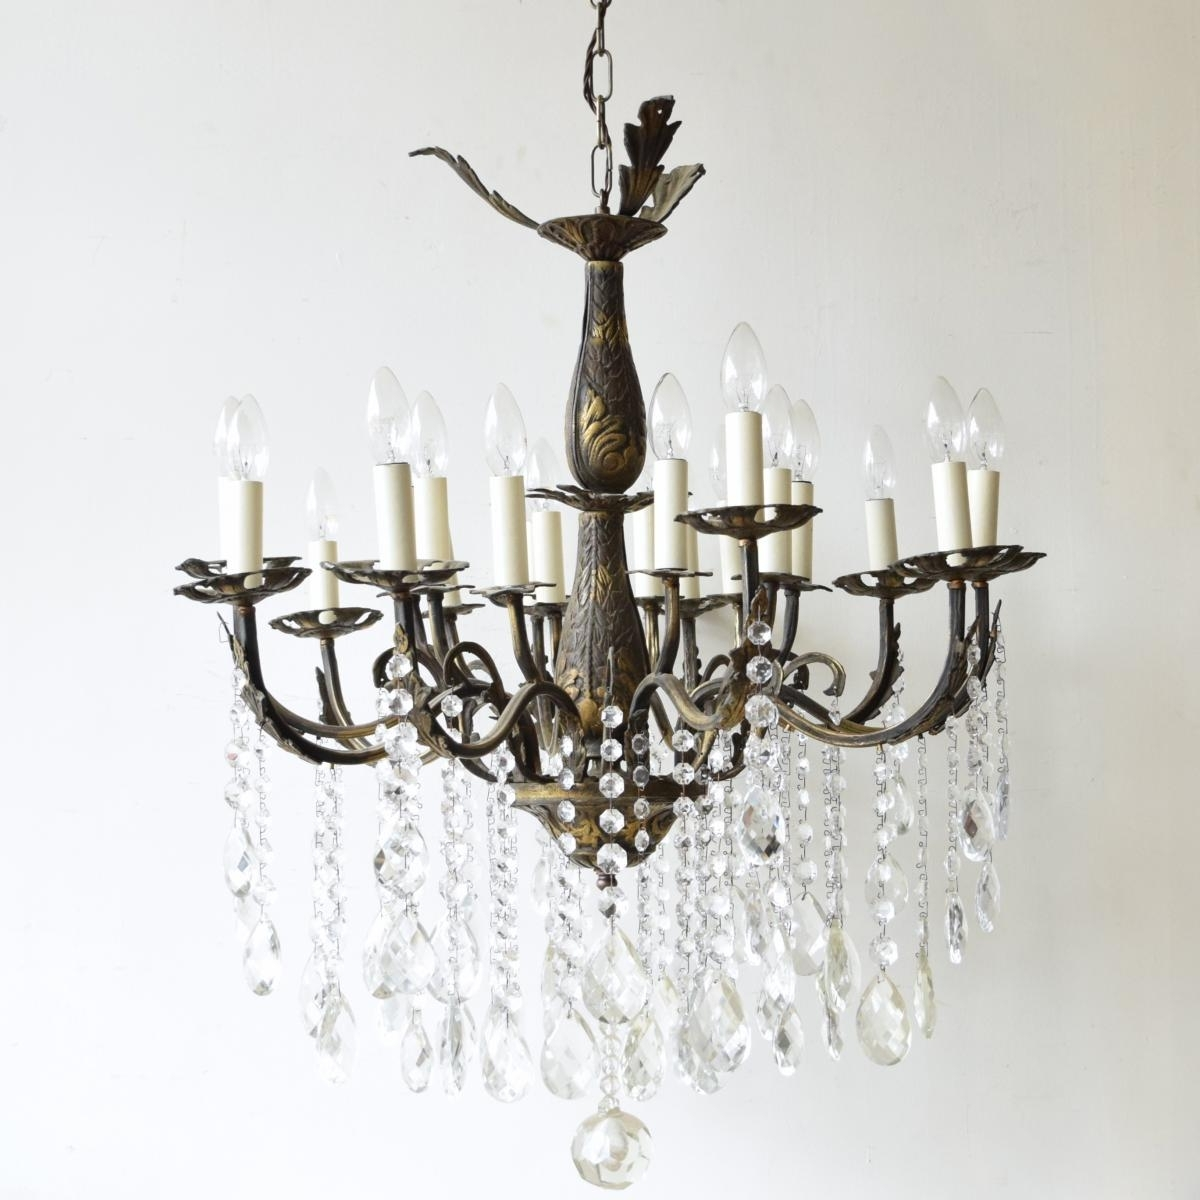 Large Vintage French 16 Light Brass Chandelier For Sale At Pamono In Preferred Vintage Brass Chandeliers (View 6 of 20)